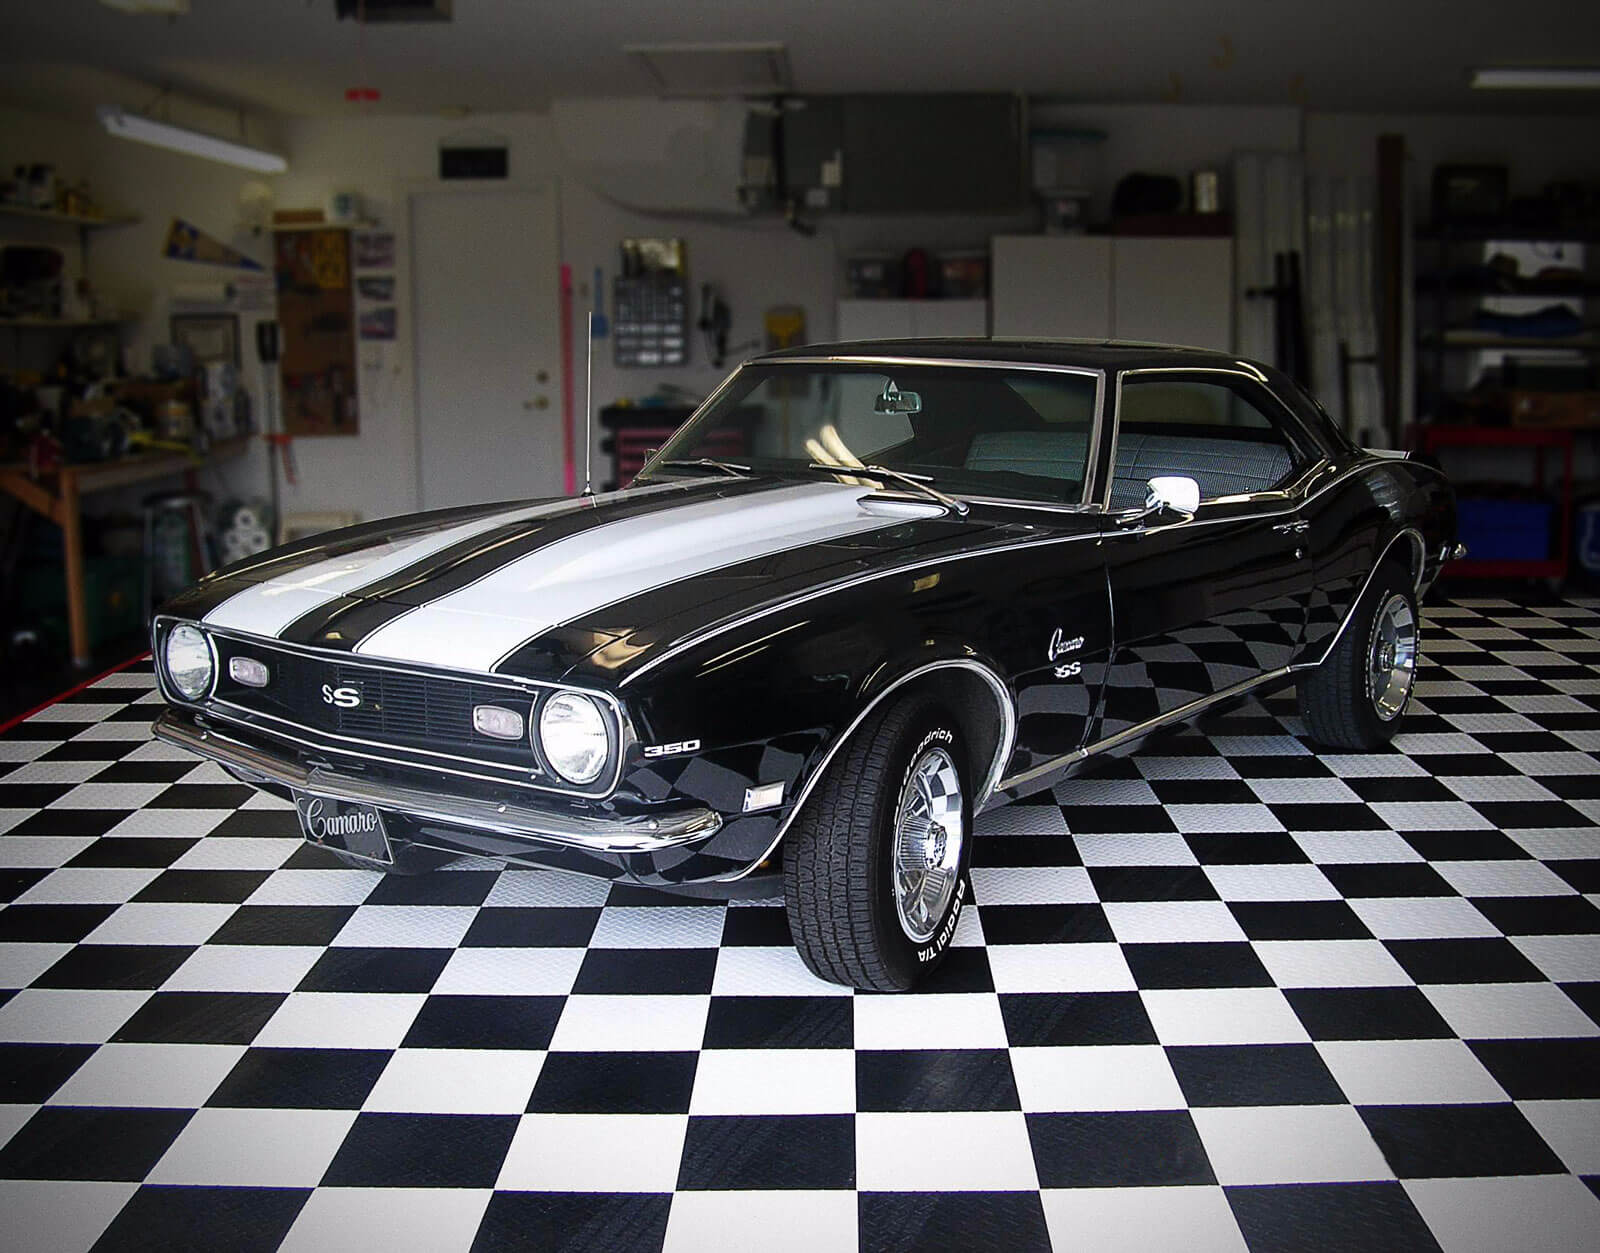 Camaro SS on a checkerboard floor with black and white RaceDeck